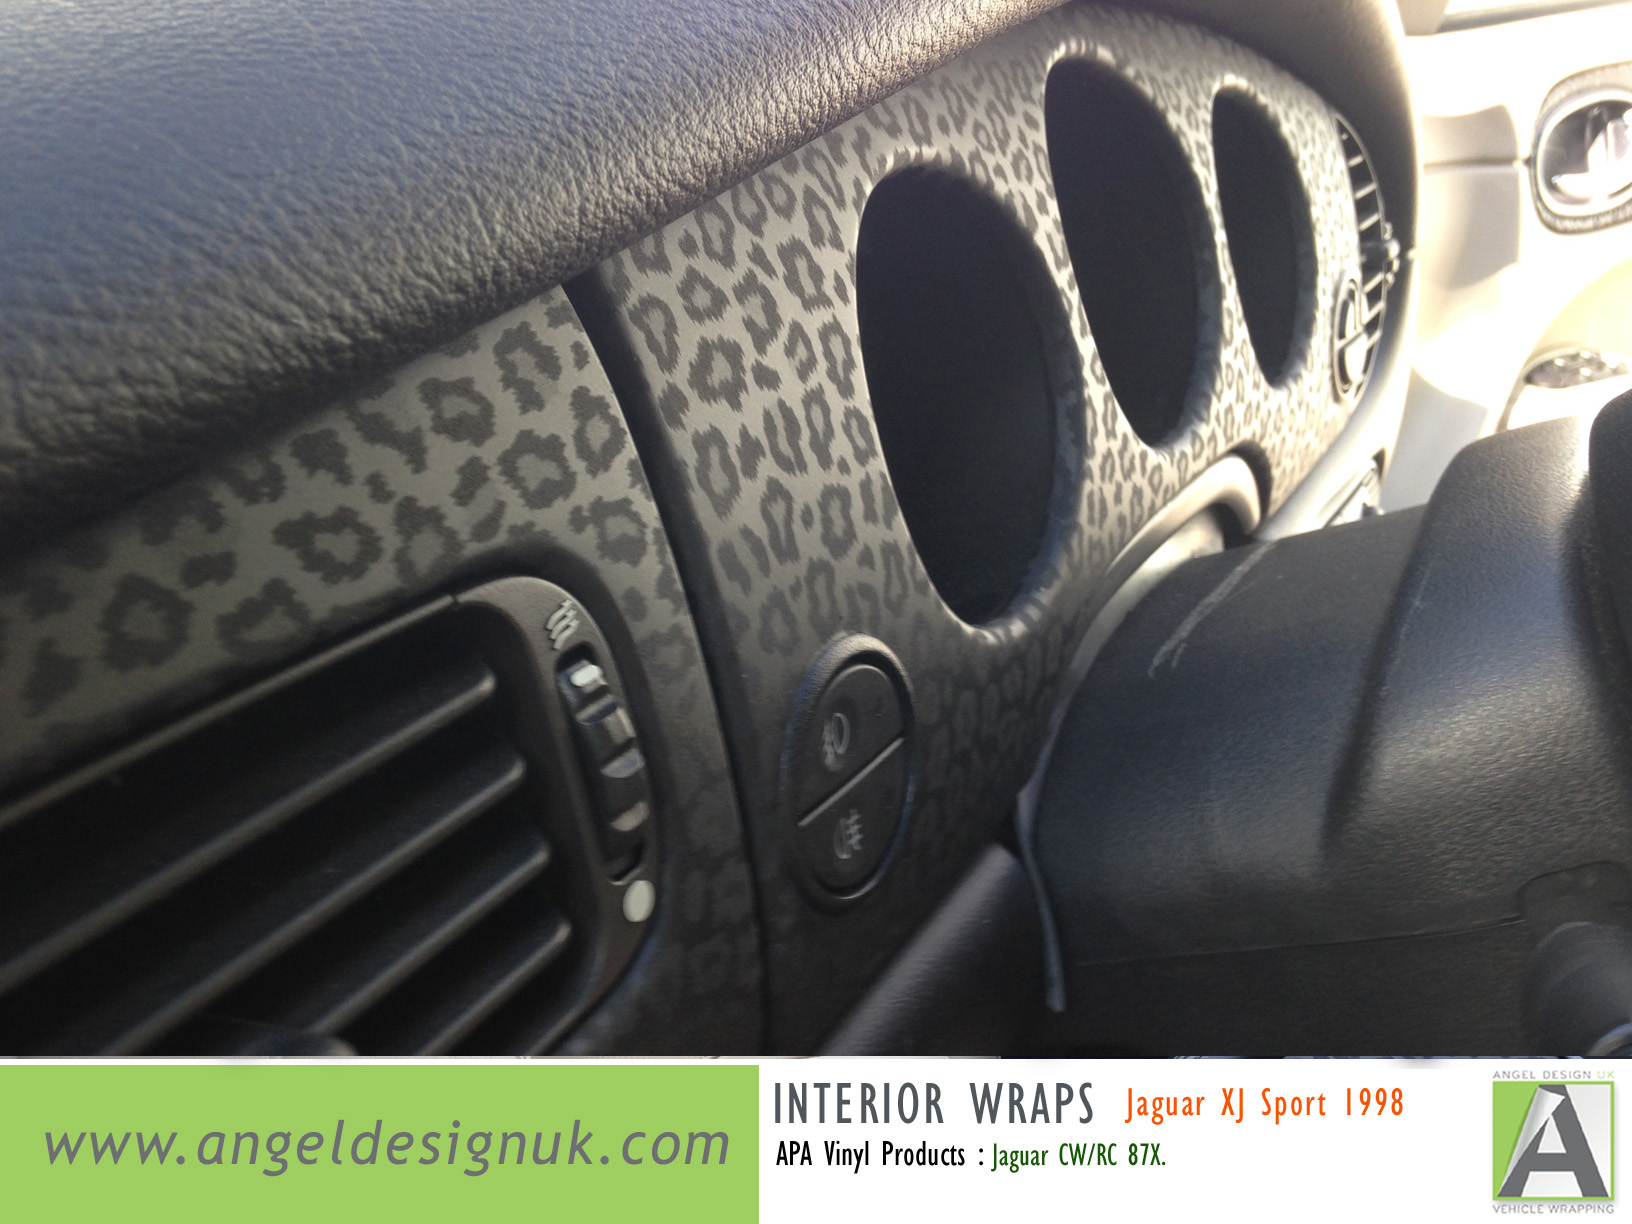 INTERIOR WRAPS JAGUAR PIC 6